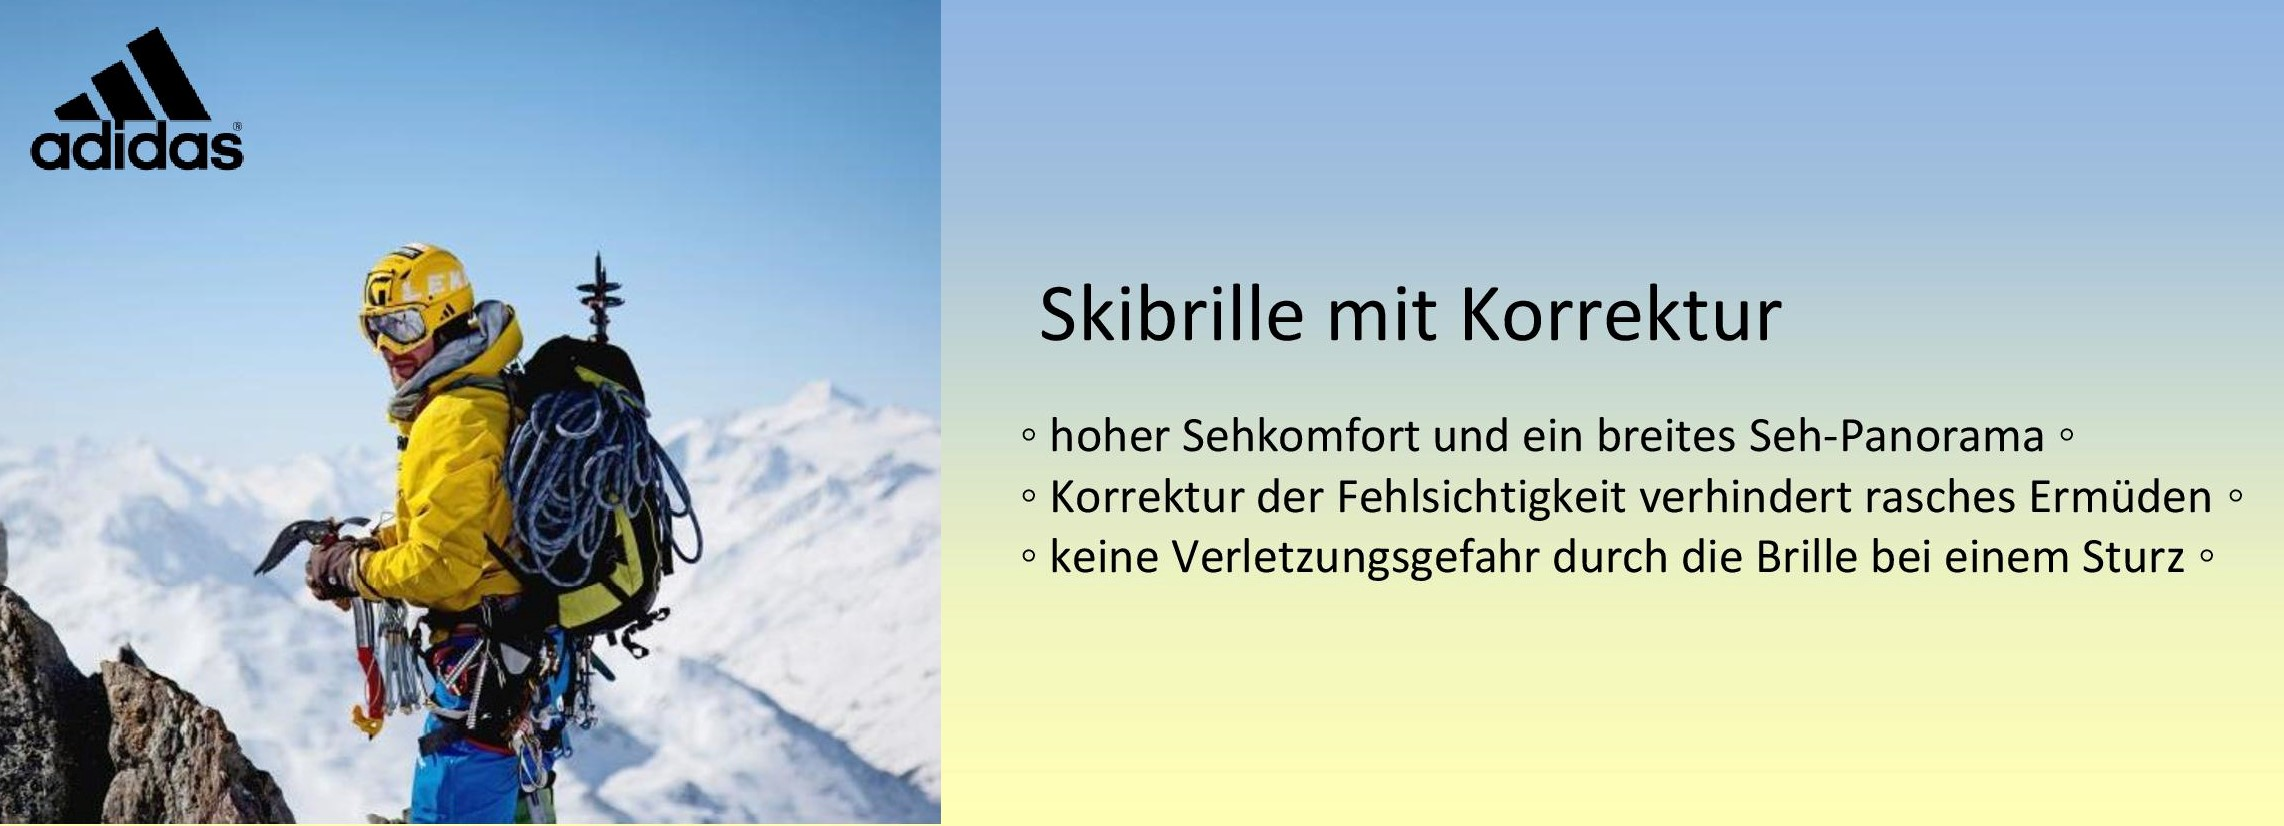 skibrille-page-001-3